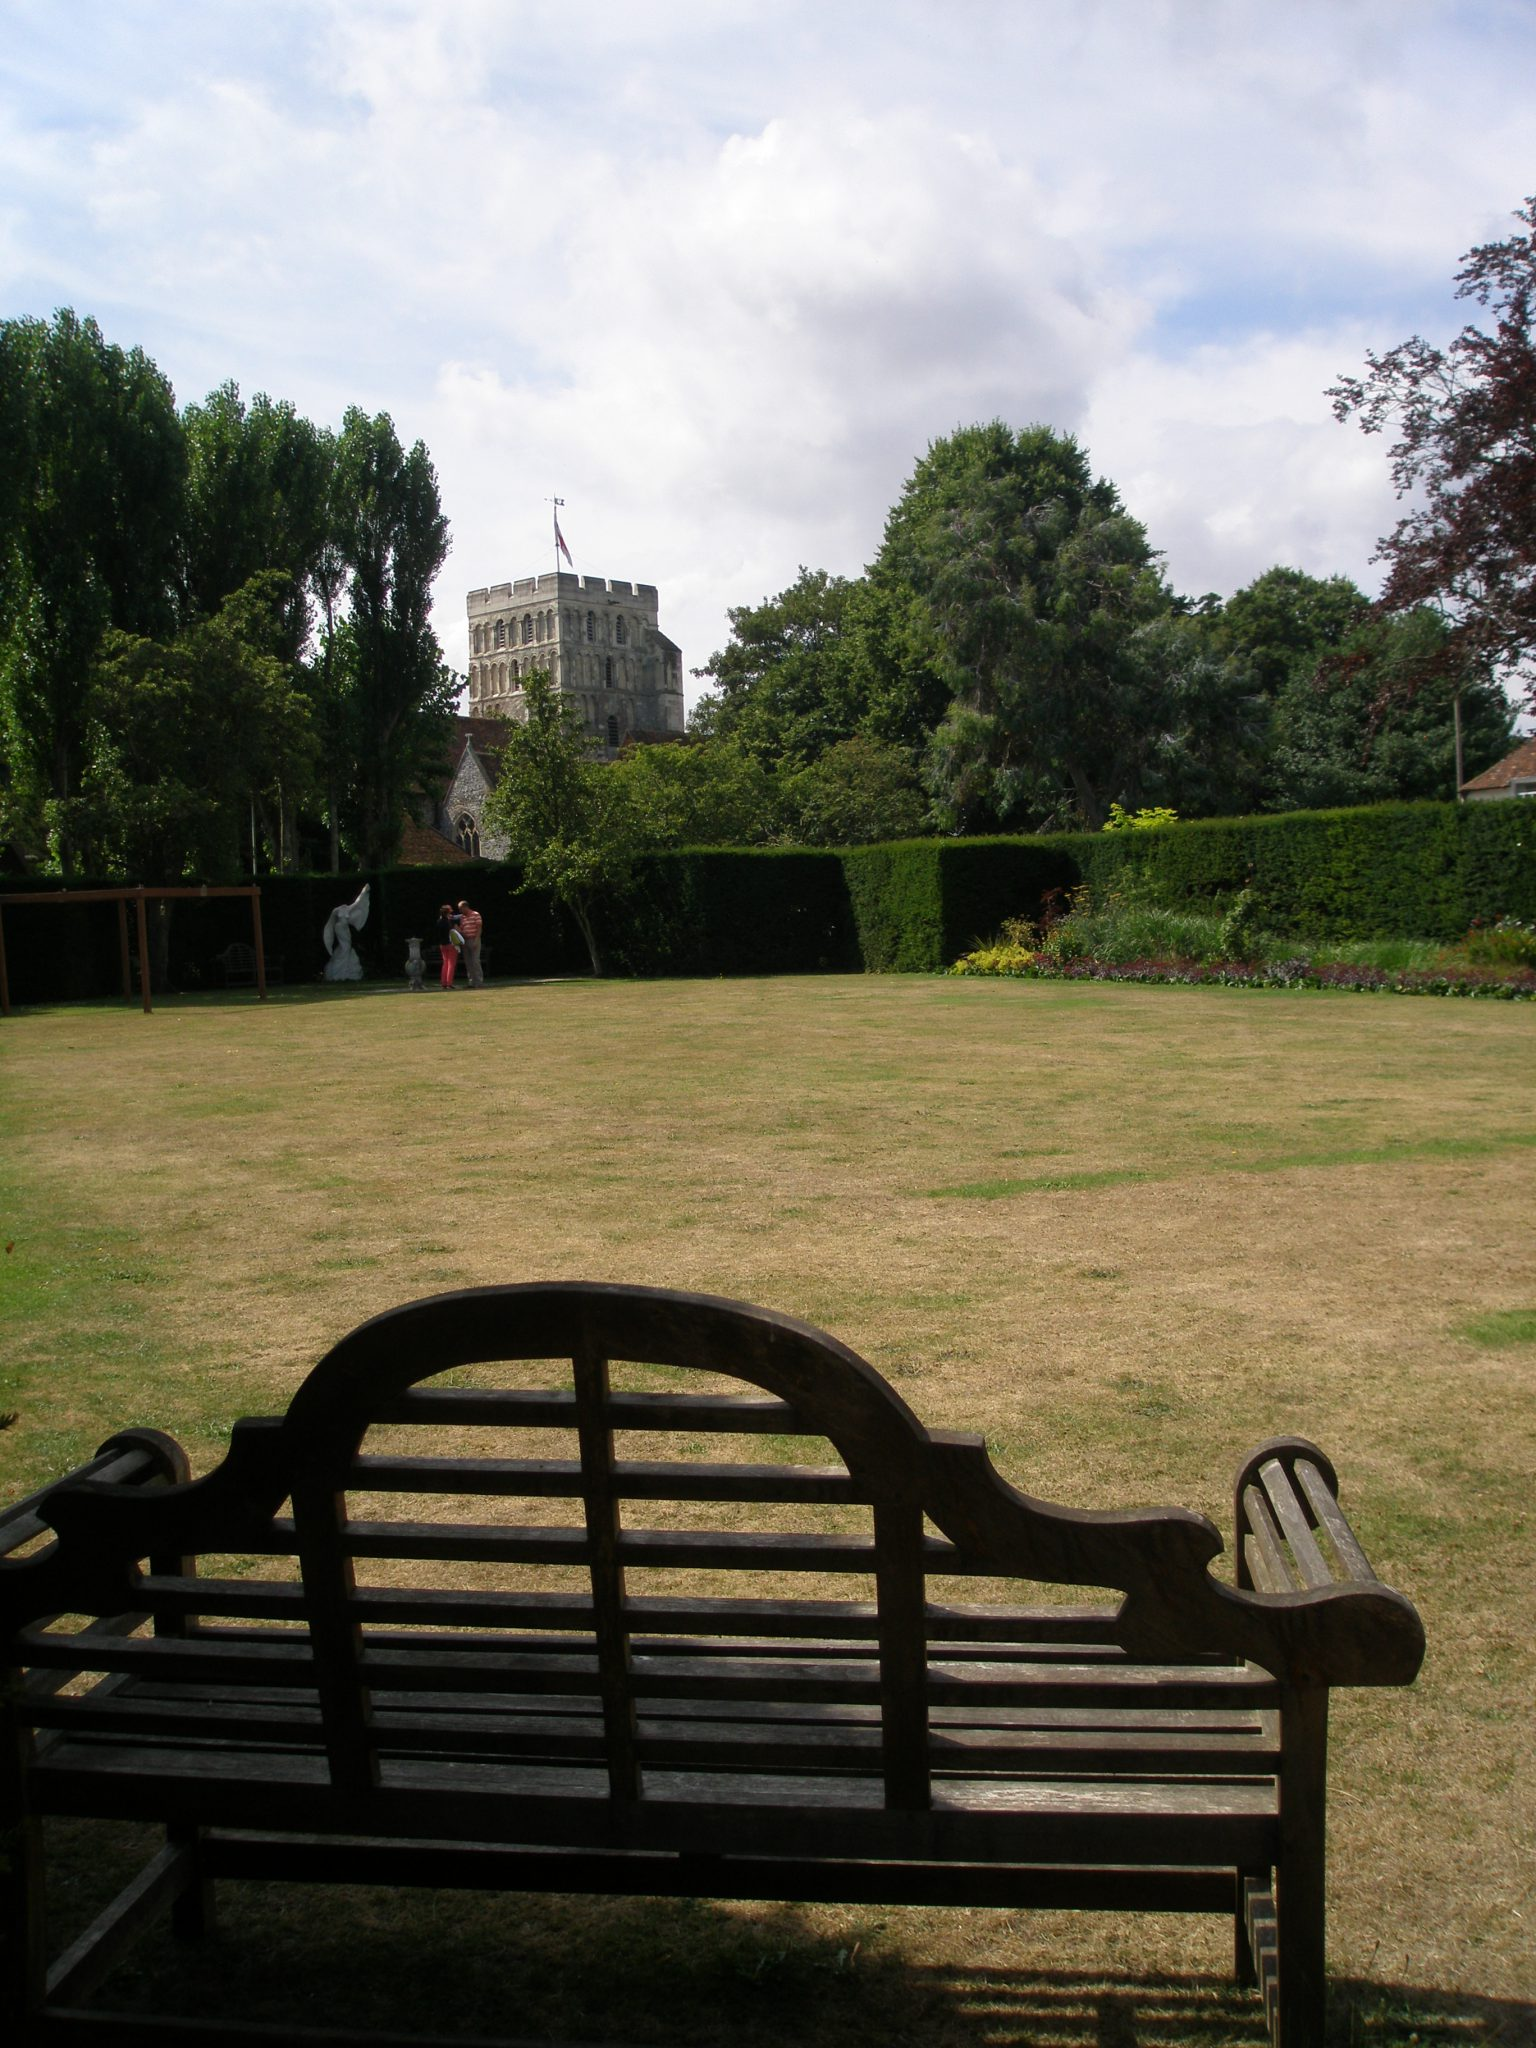 A long view across the sunburnt green of the Bowling Lawn